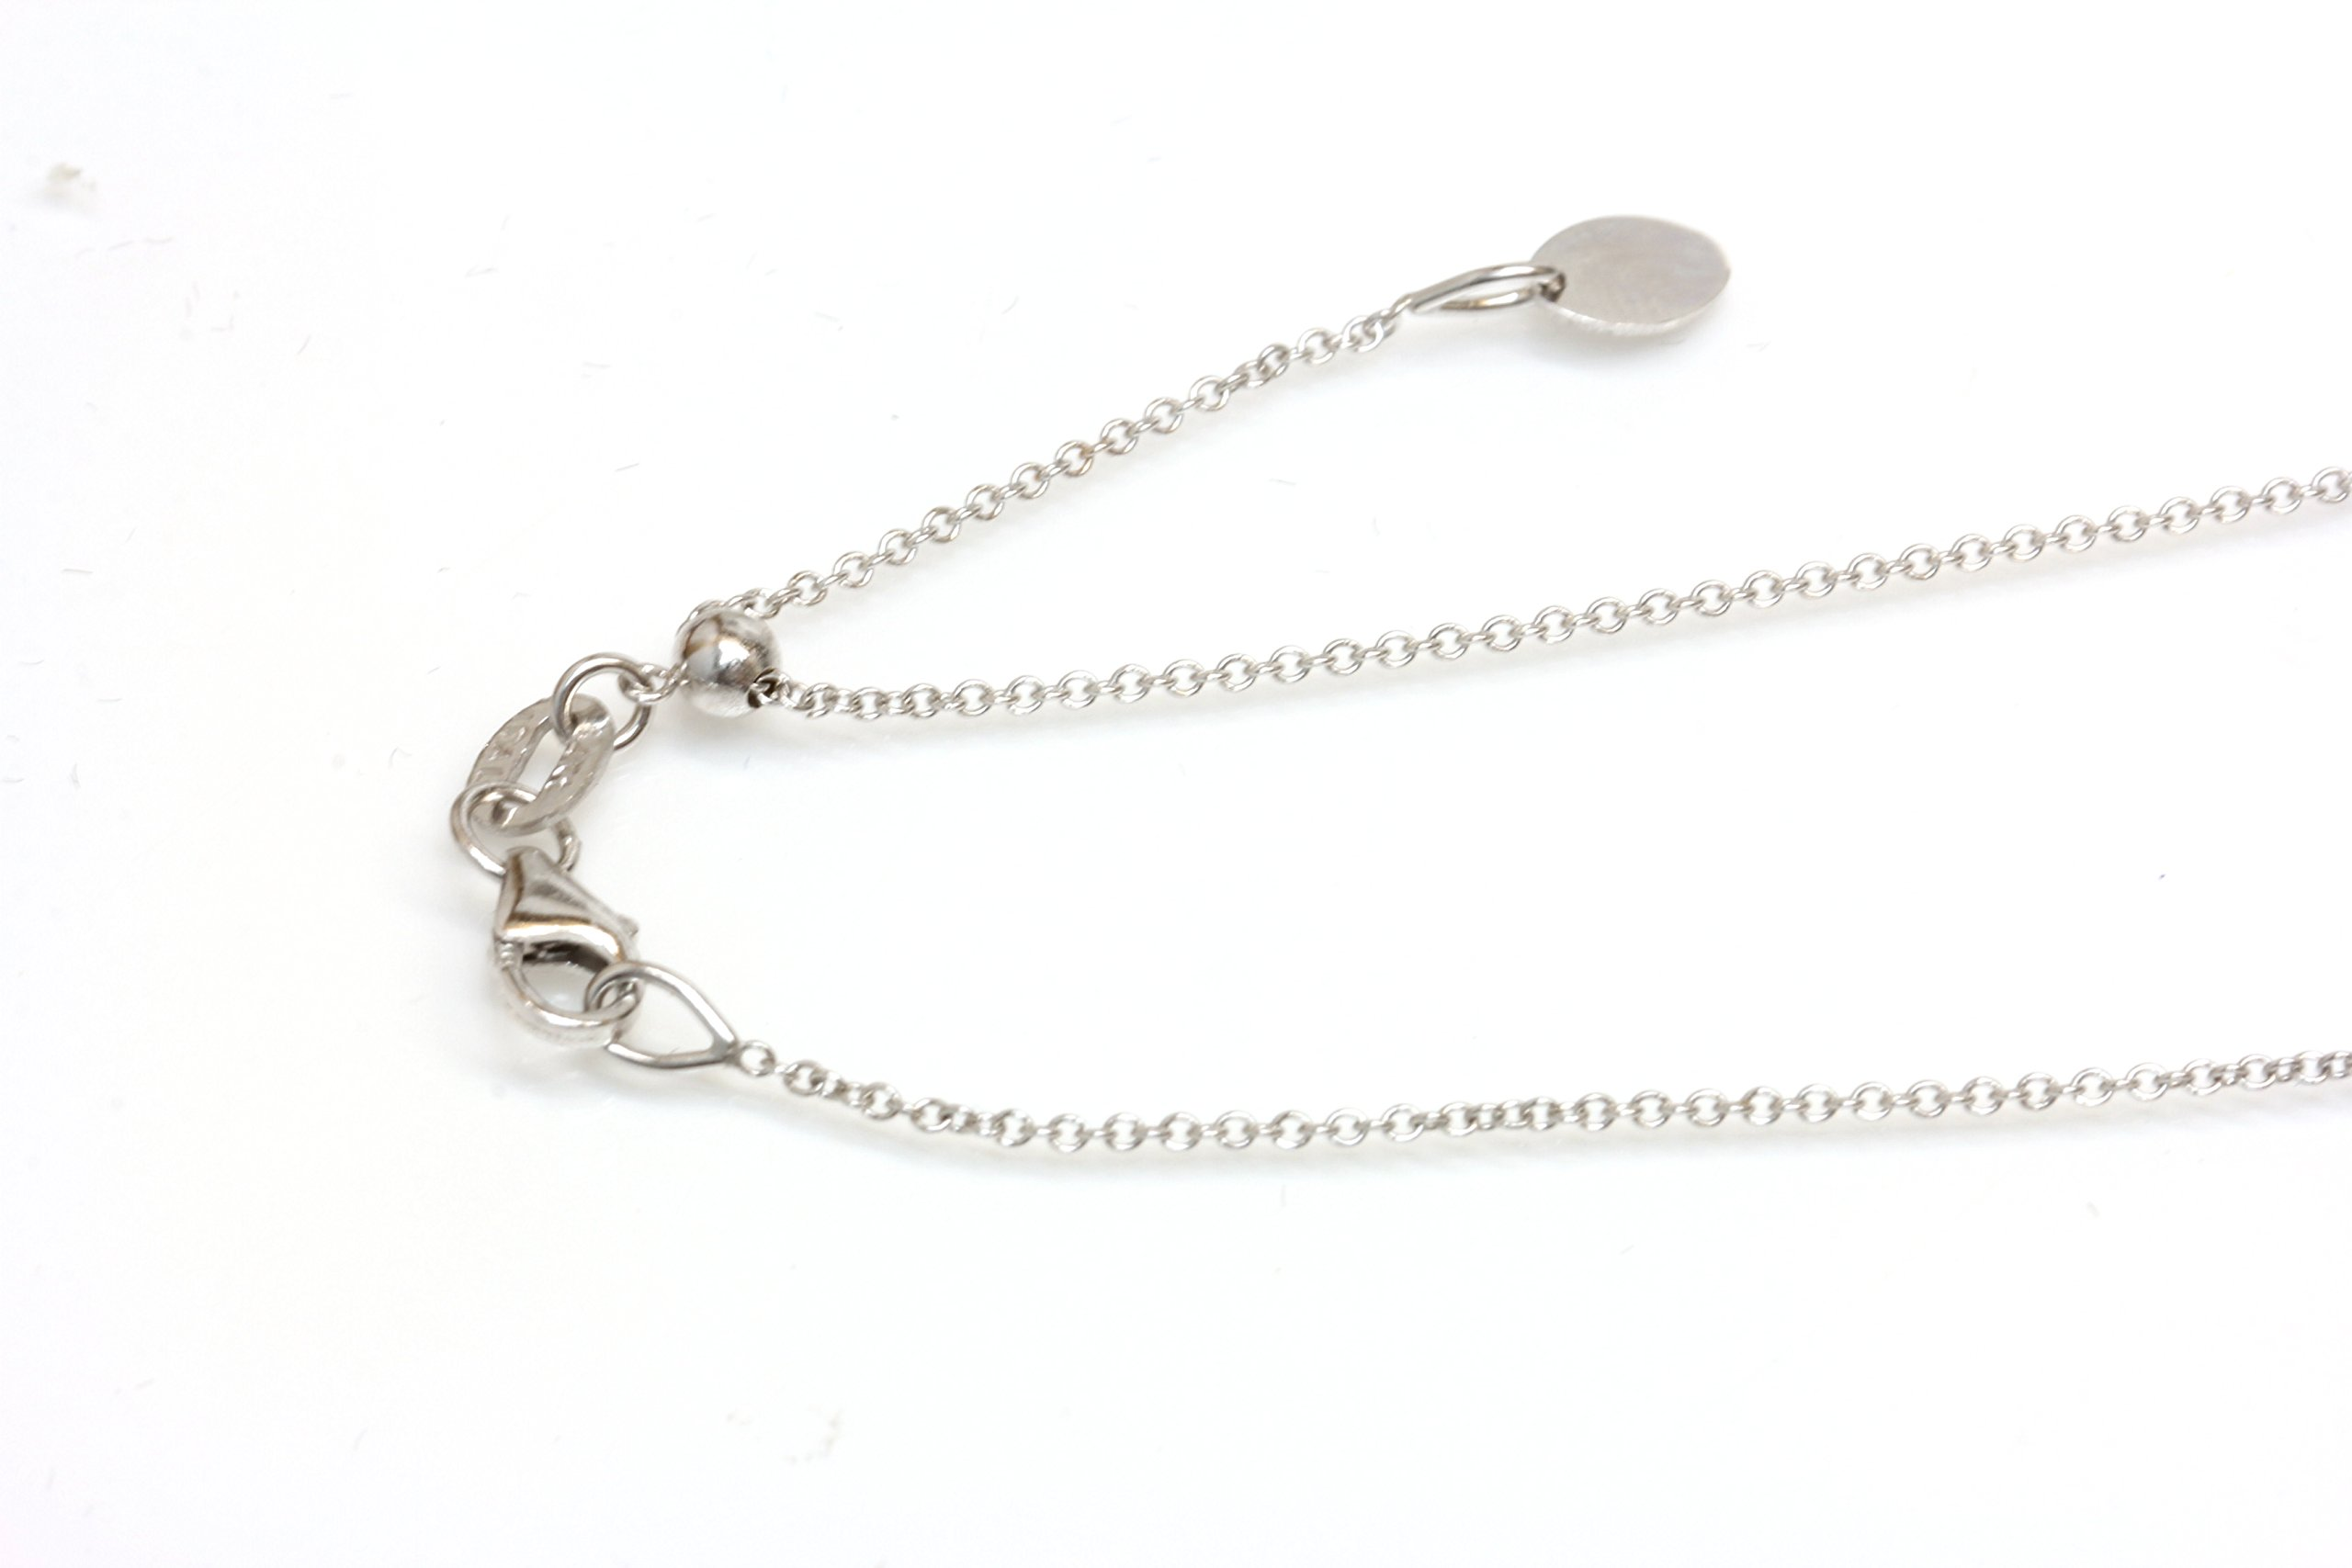 14kt Solid White Gold Adjustable Chain 14'', 16'',18'' 20'' Easy Slide and Adjust ,Italy Lobster Claw Clasp